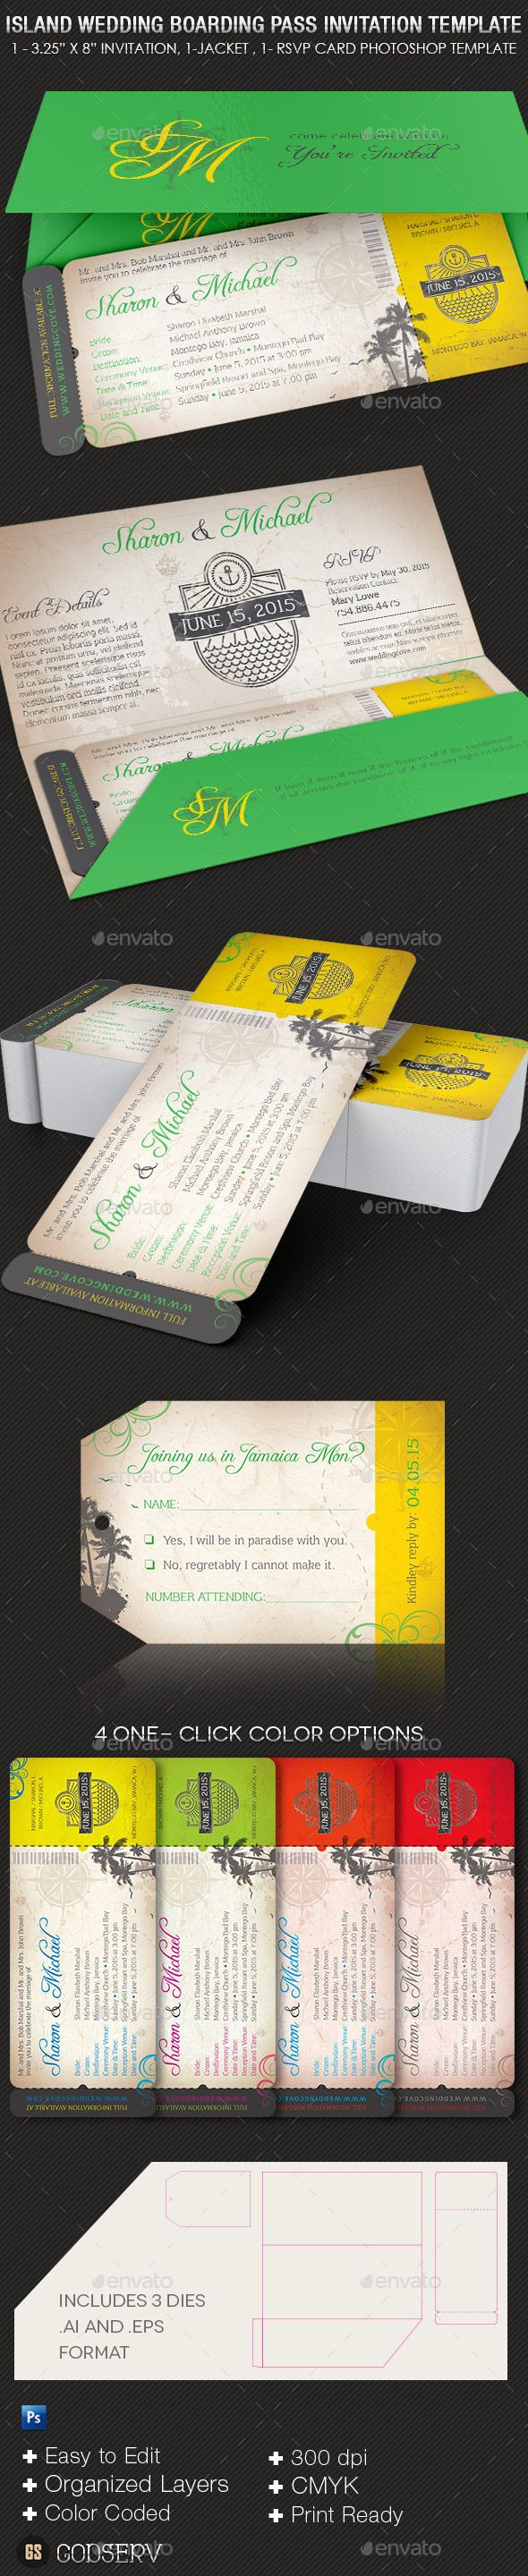 The Best Invitation And Event Programs Templates Images On - Photoshop wedding program template